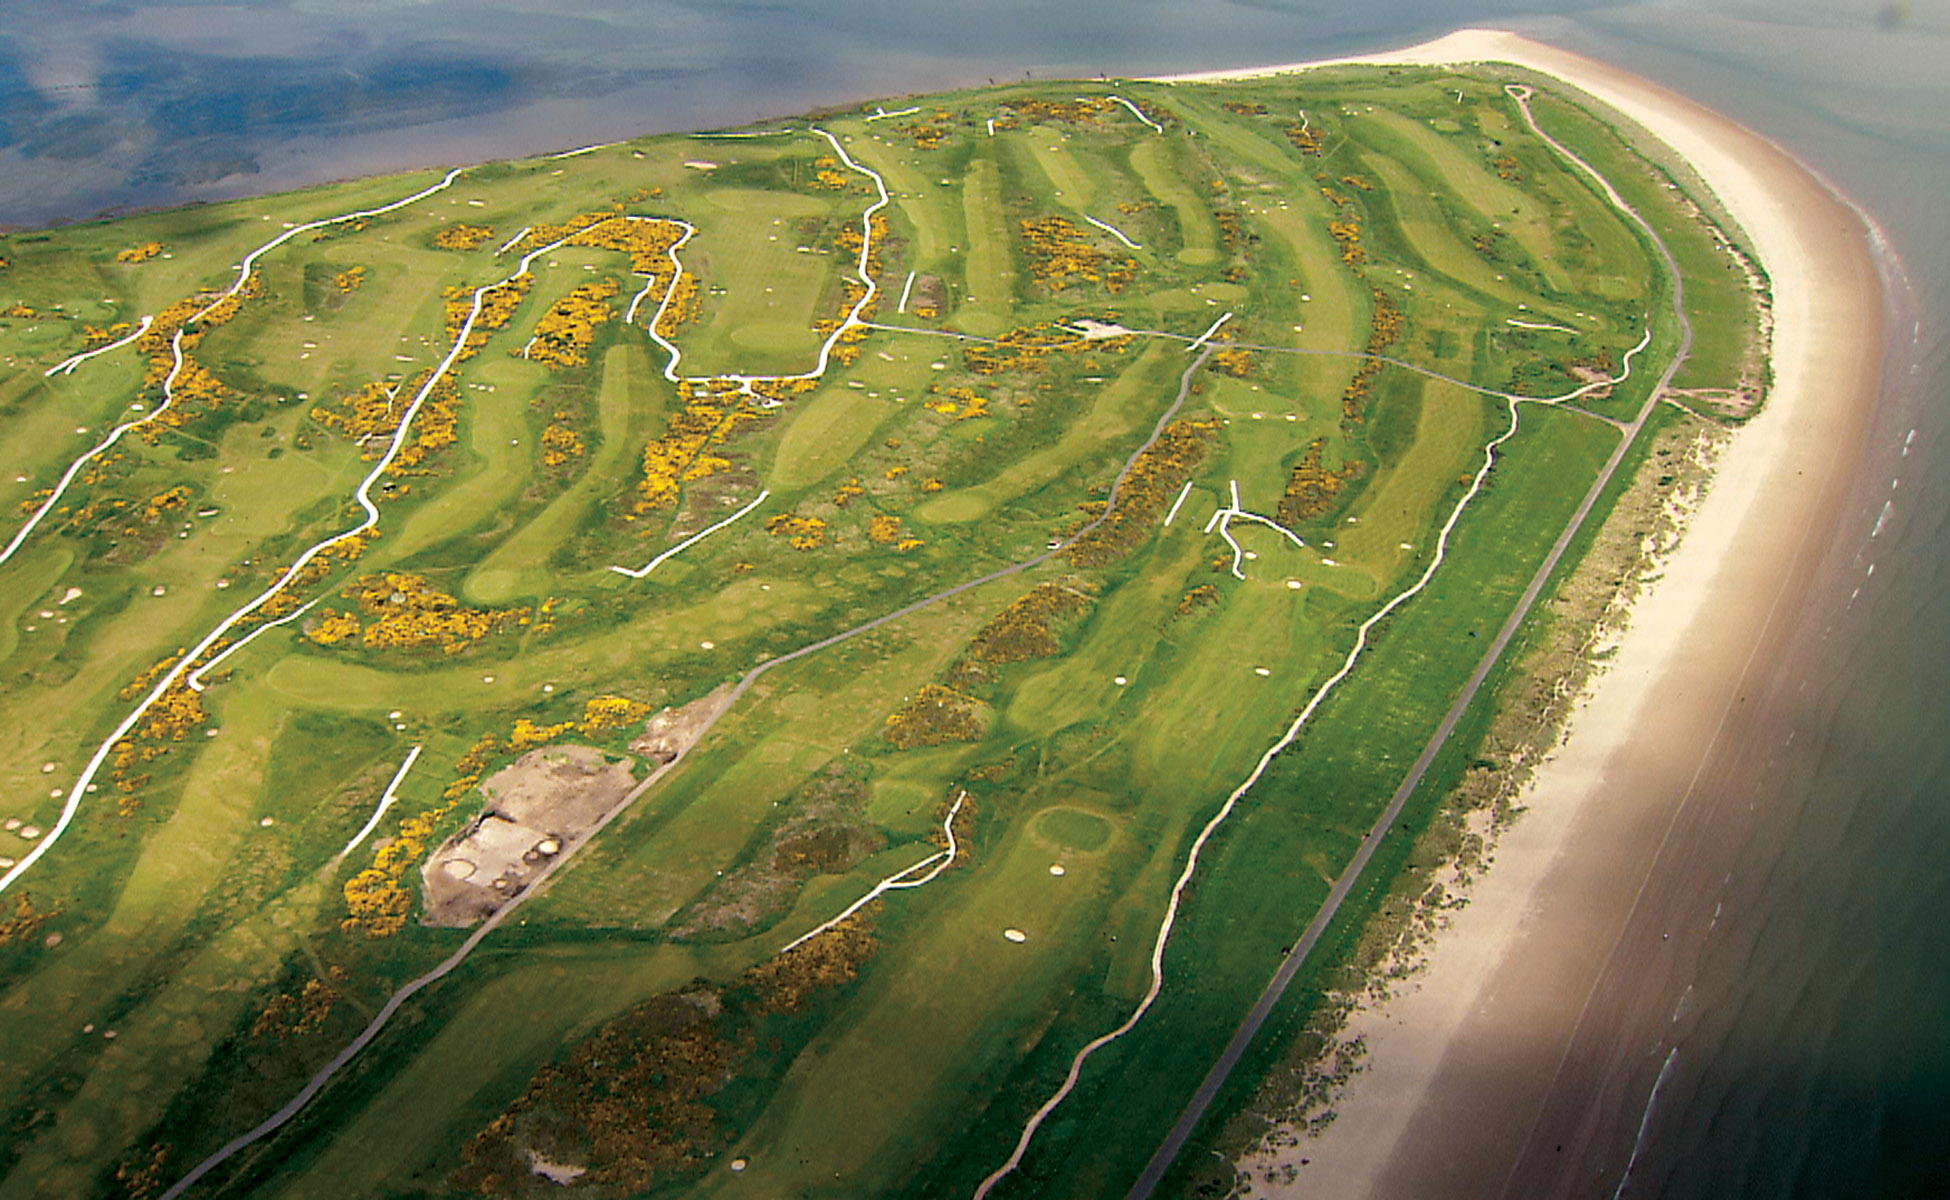 st_andrews_birdseye_view